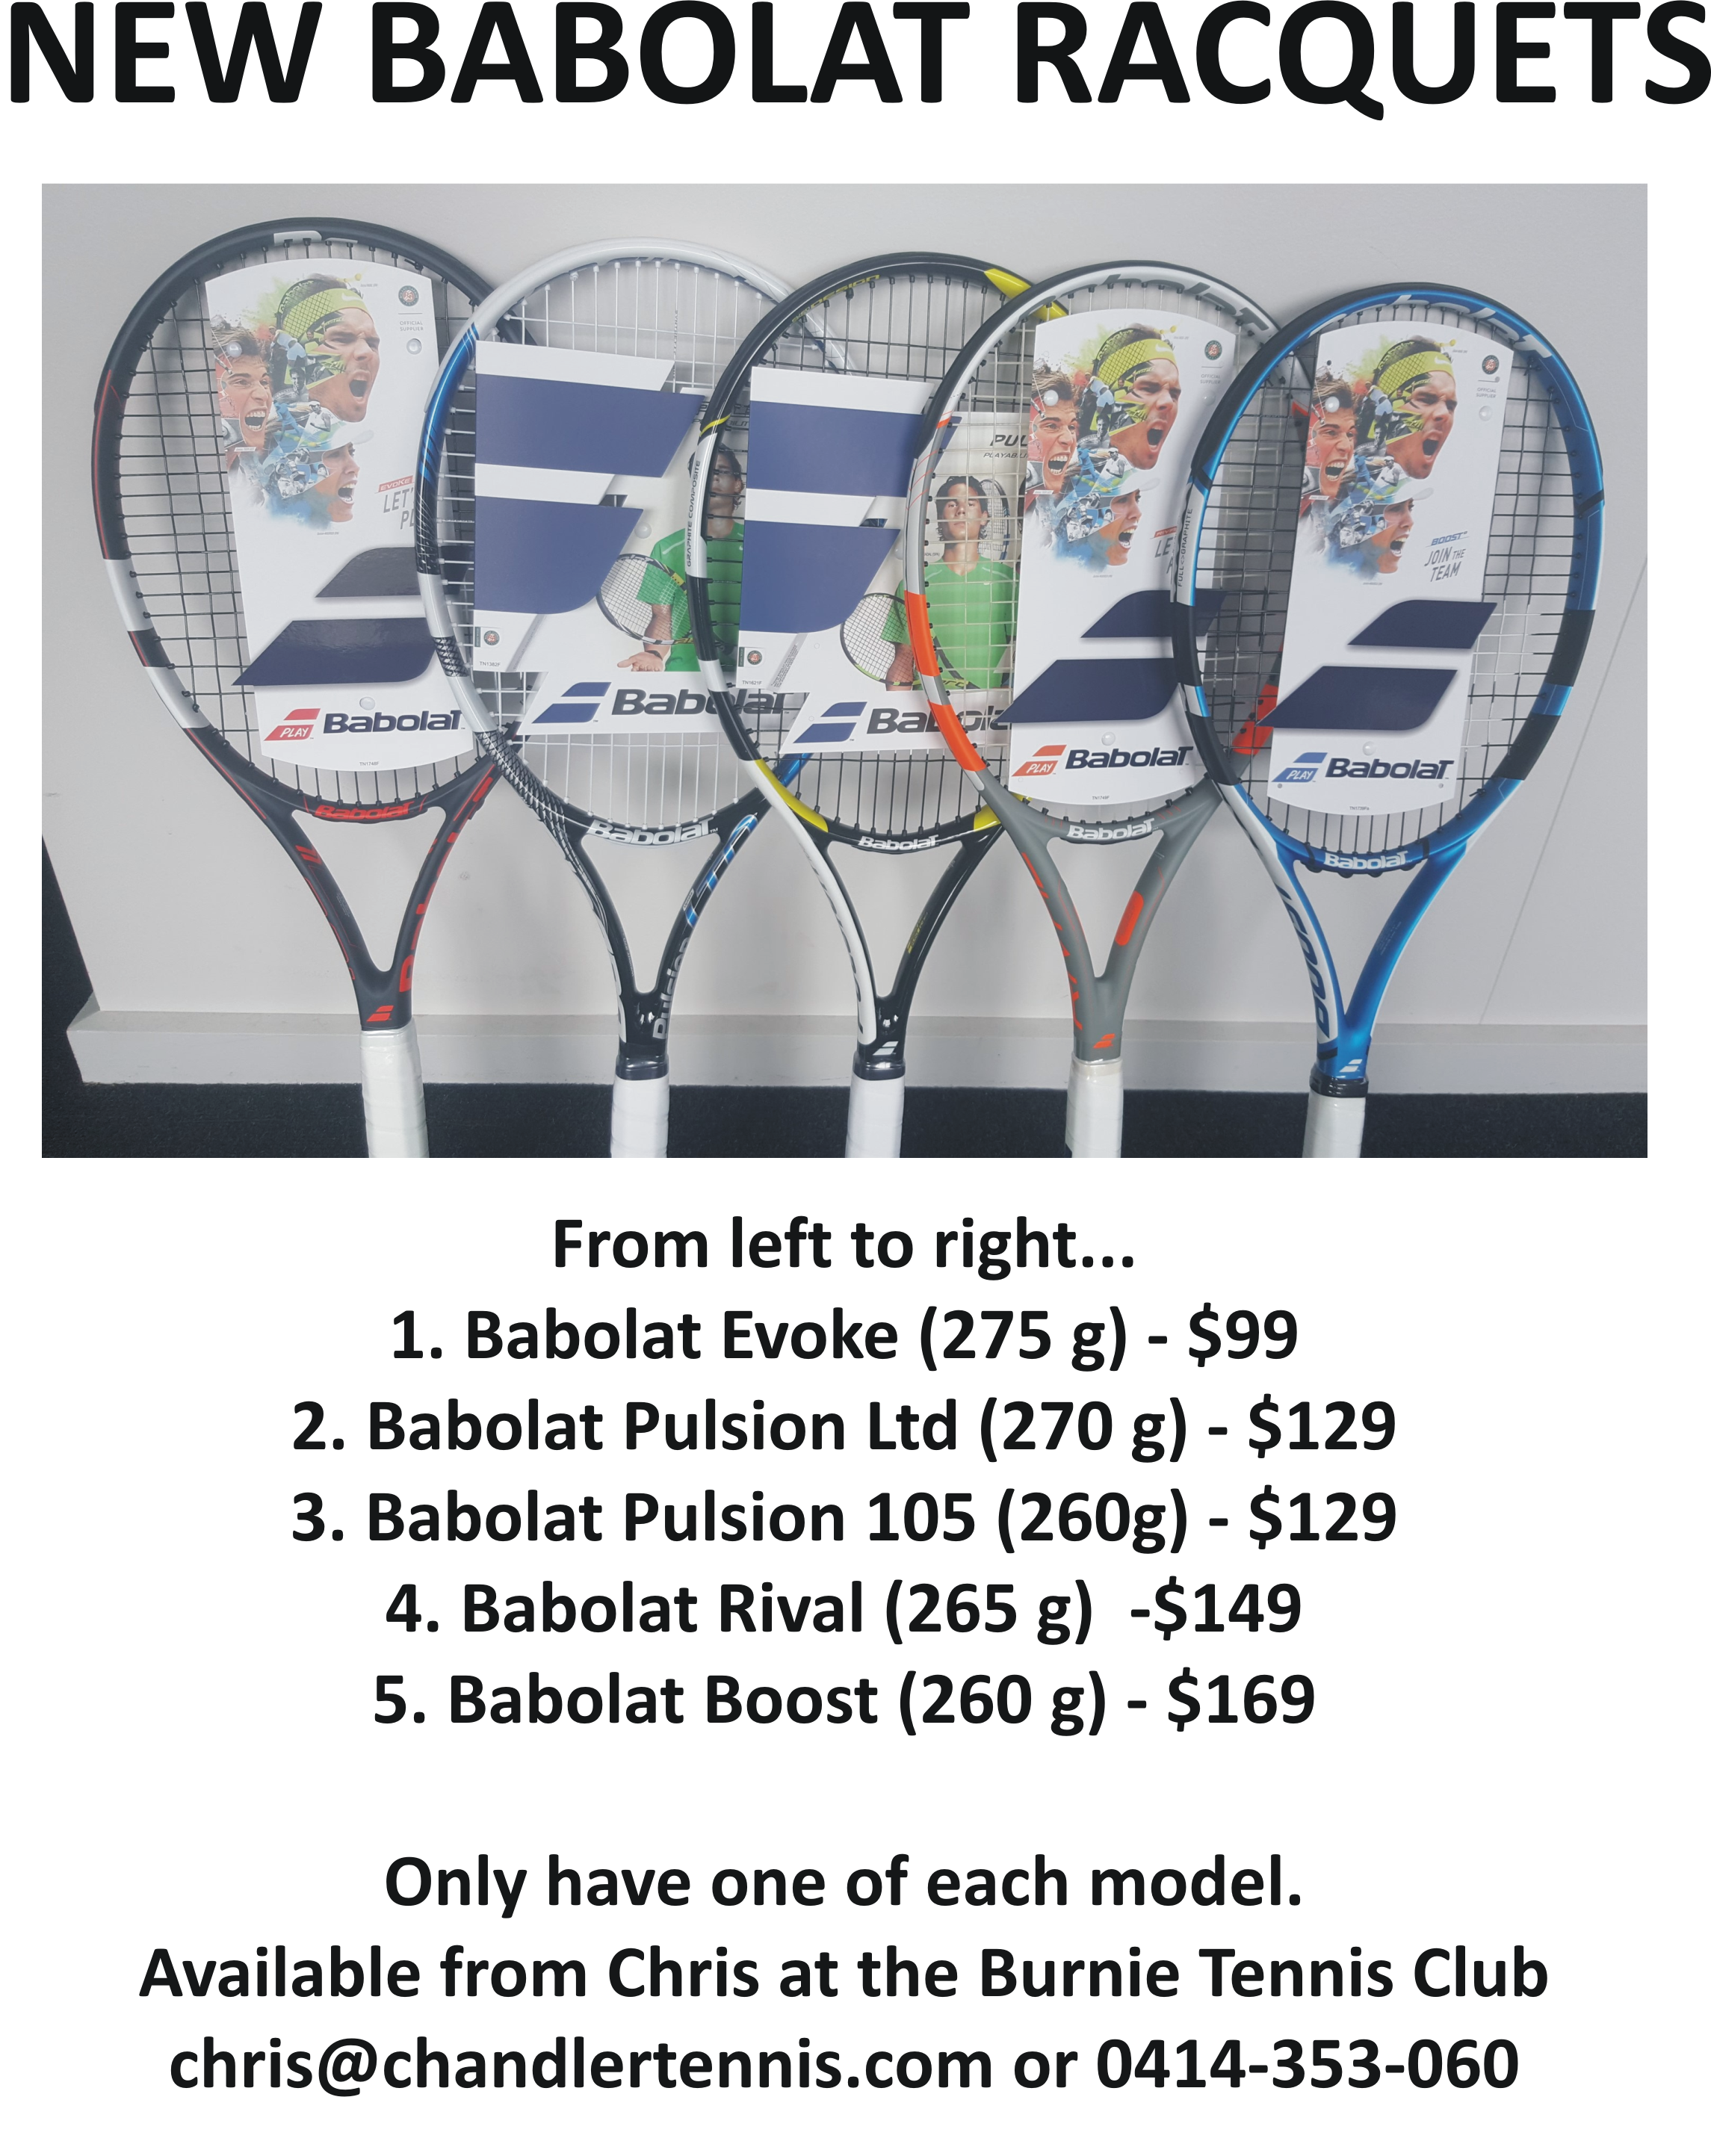 Babolat Racquets 0318